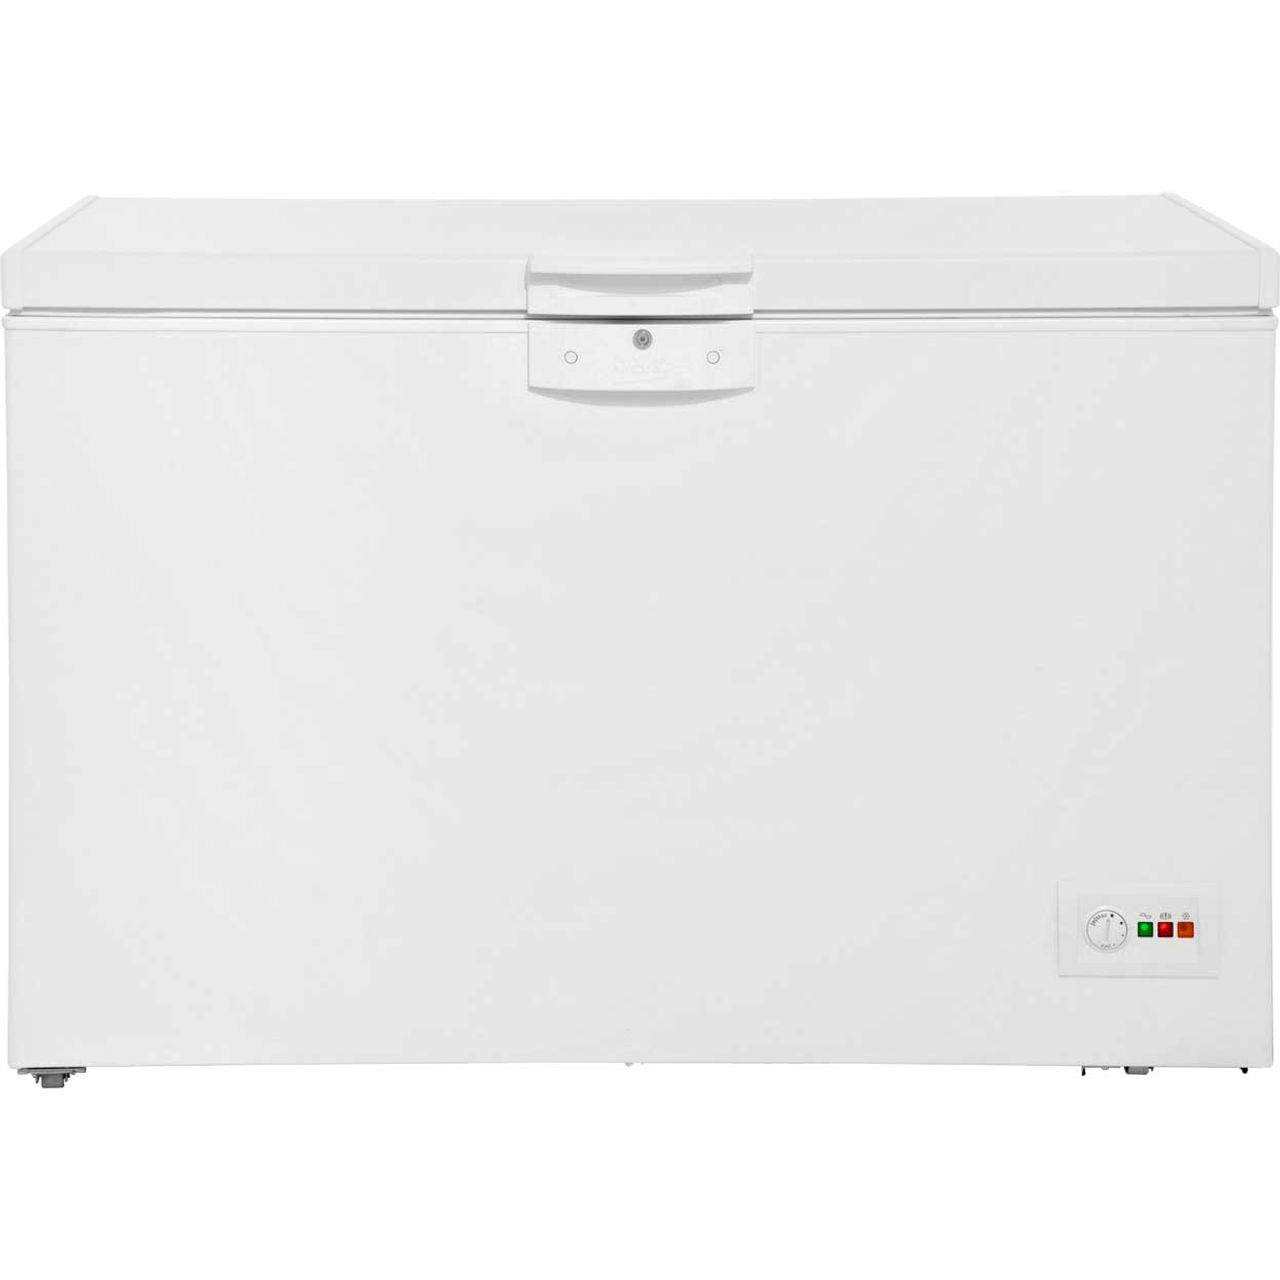 Beko Chest Freezer Cf1300apw 100 Box